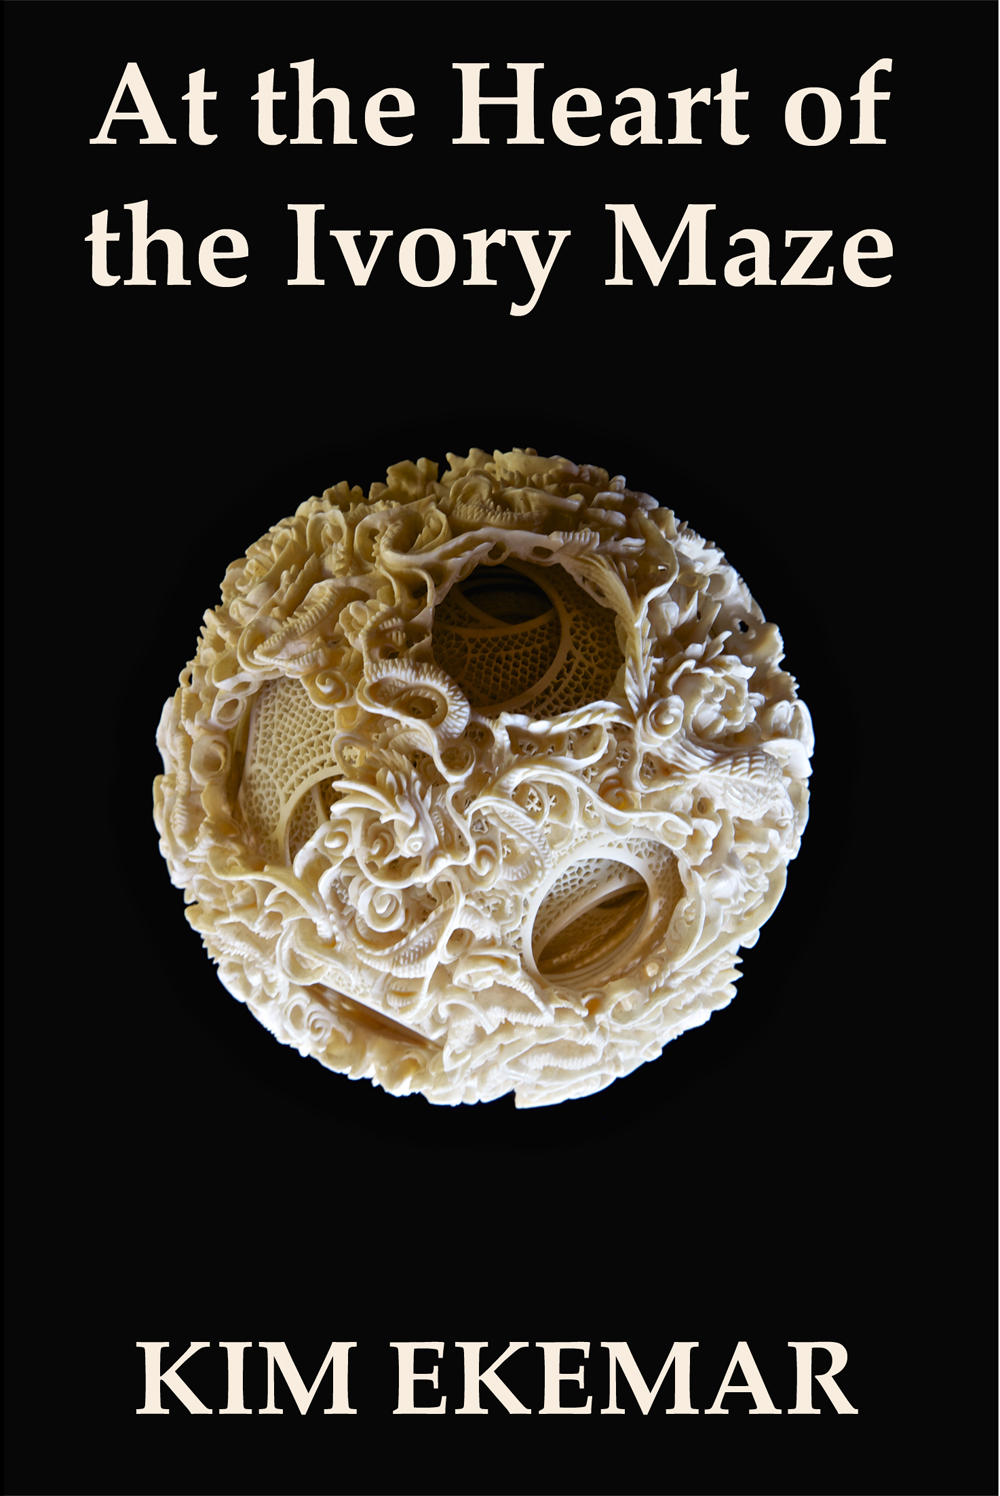 160624 At the Heart of the Ivory Maze.jpg